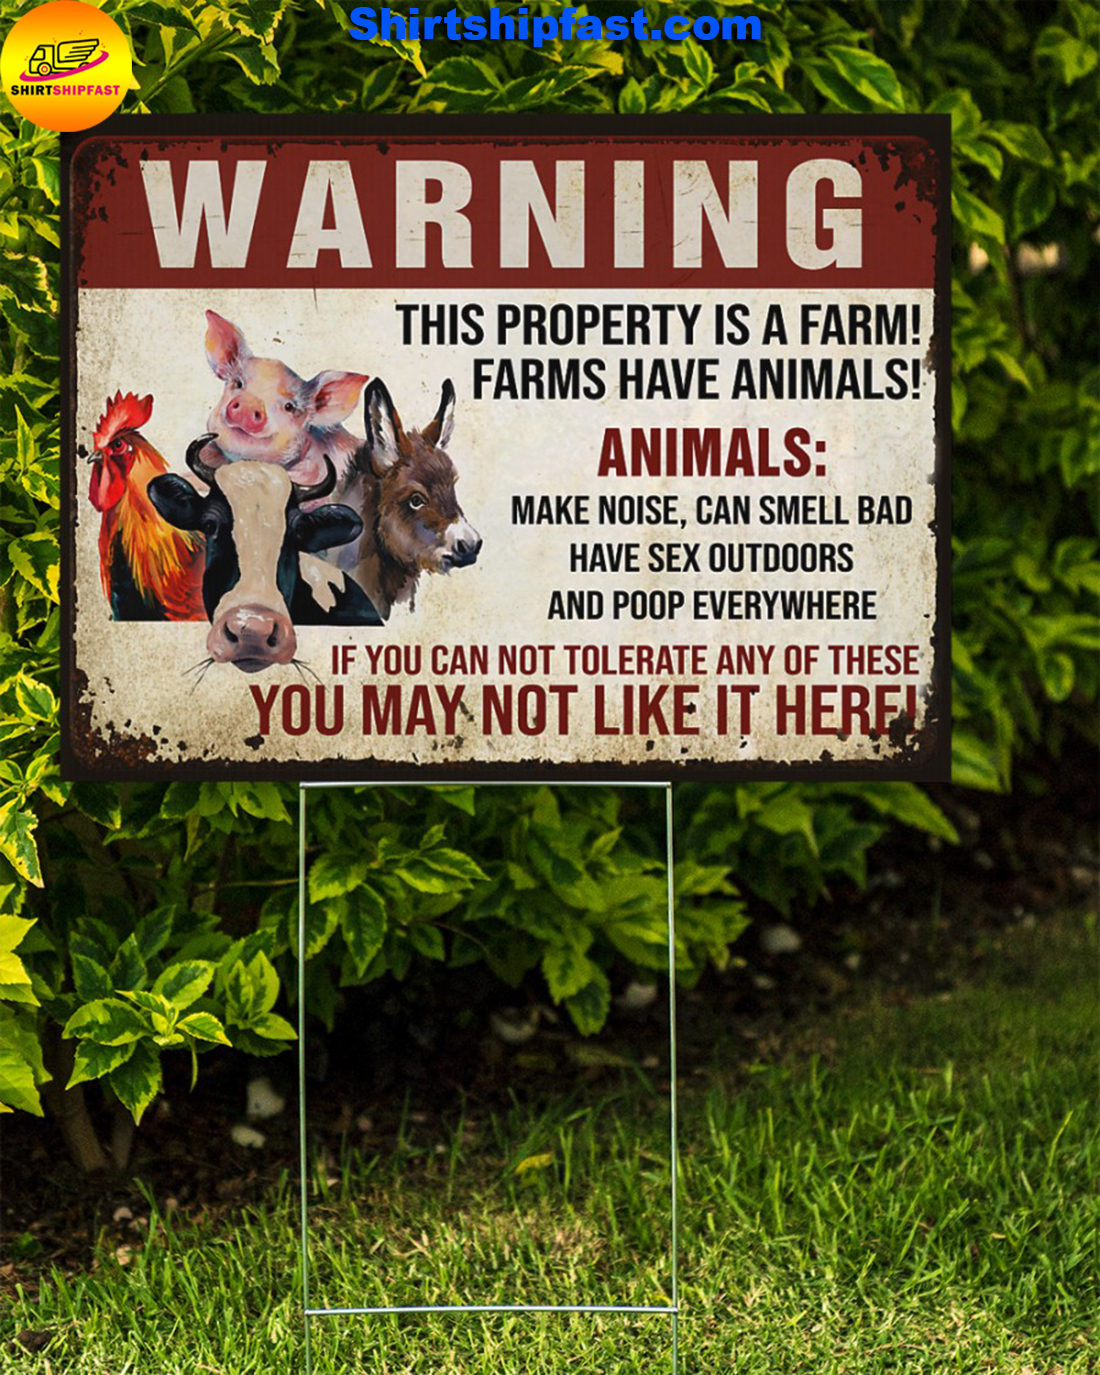 Animals Warninng this property is a farm yard signs - Picture 1